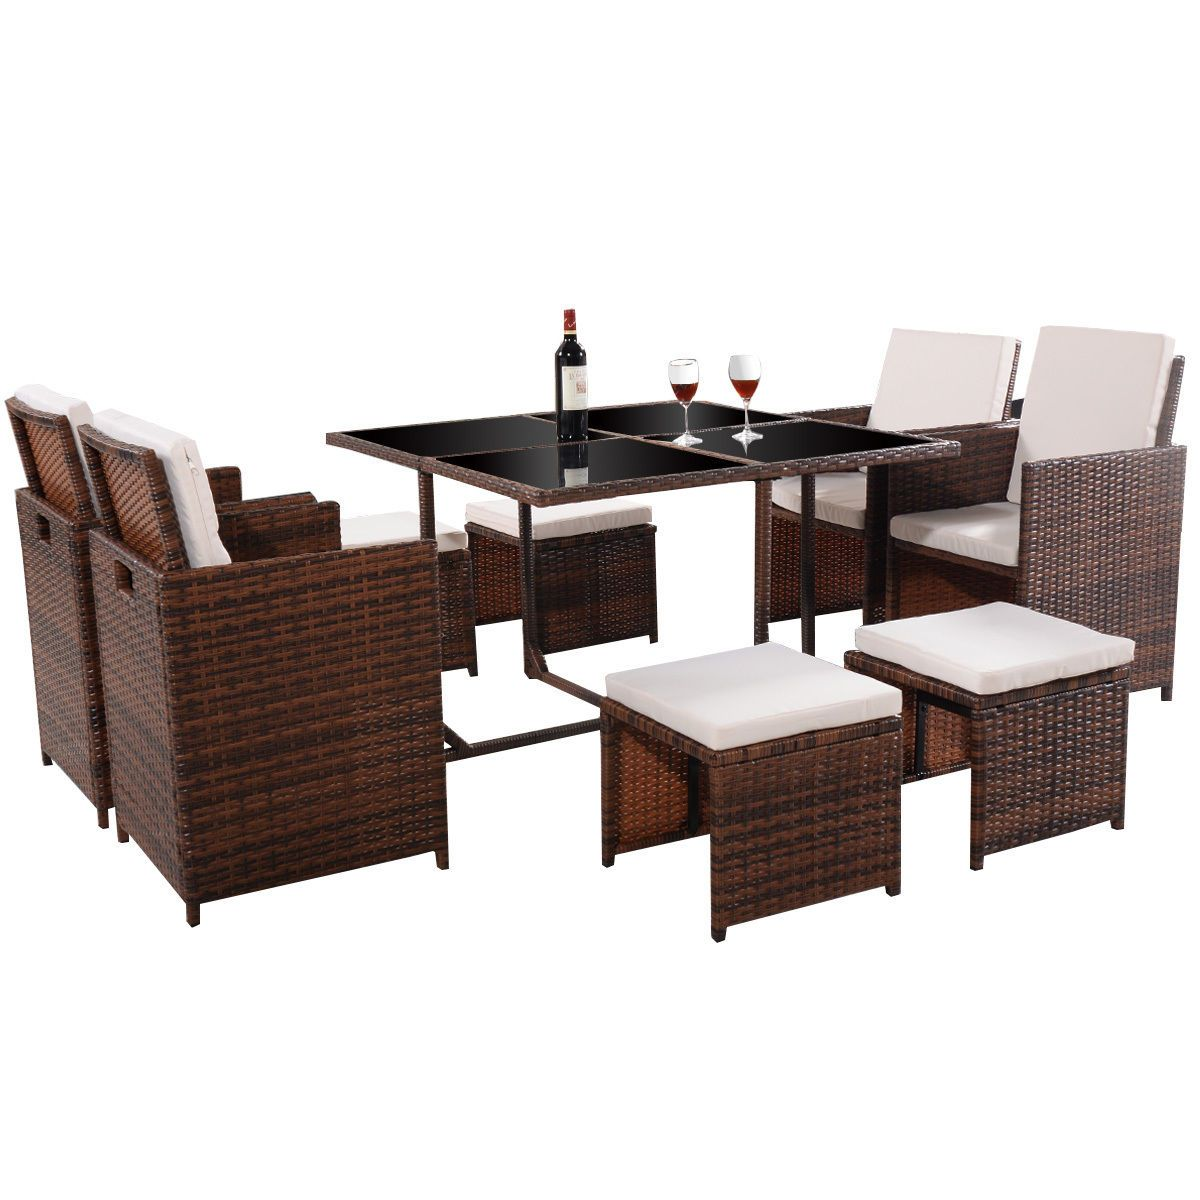 9 PC Mix Brown Patio Garden Rattan Wicker Sofa Set Furniture Cushioned  W/Ottoman